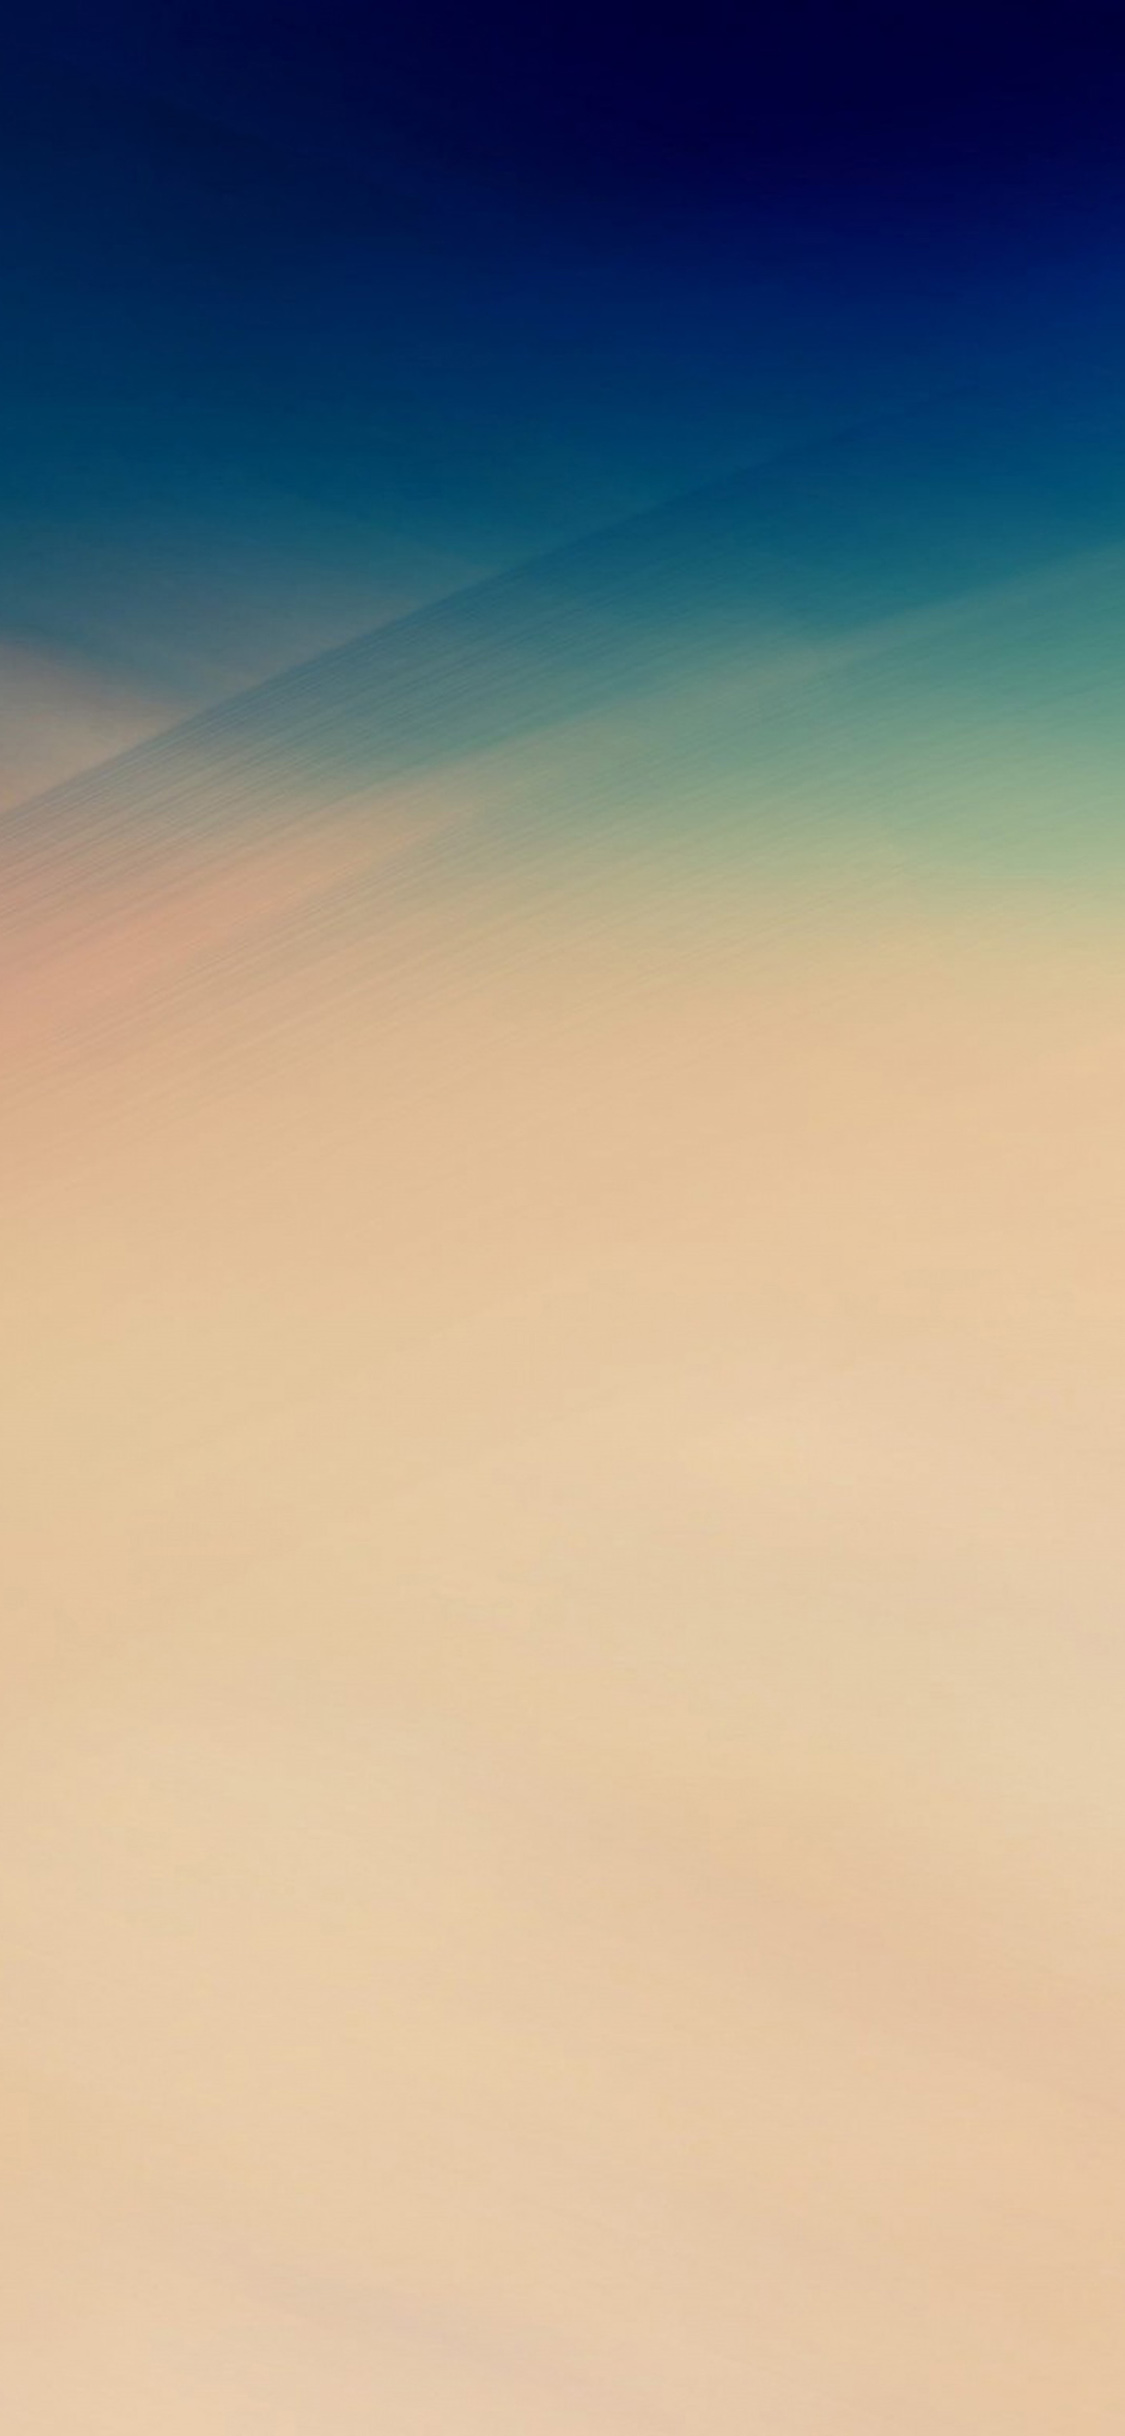 iPhoneXpapers.com-Apple-iPhone-wallpaper-vk46-soft-gradation-abstract-blue-yellow-pattern